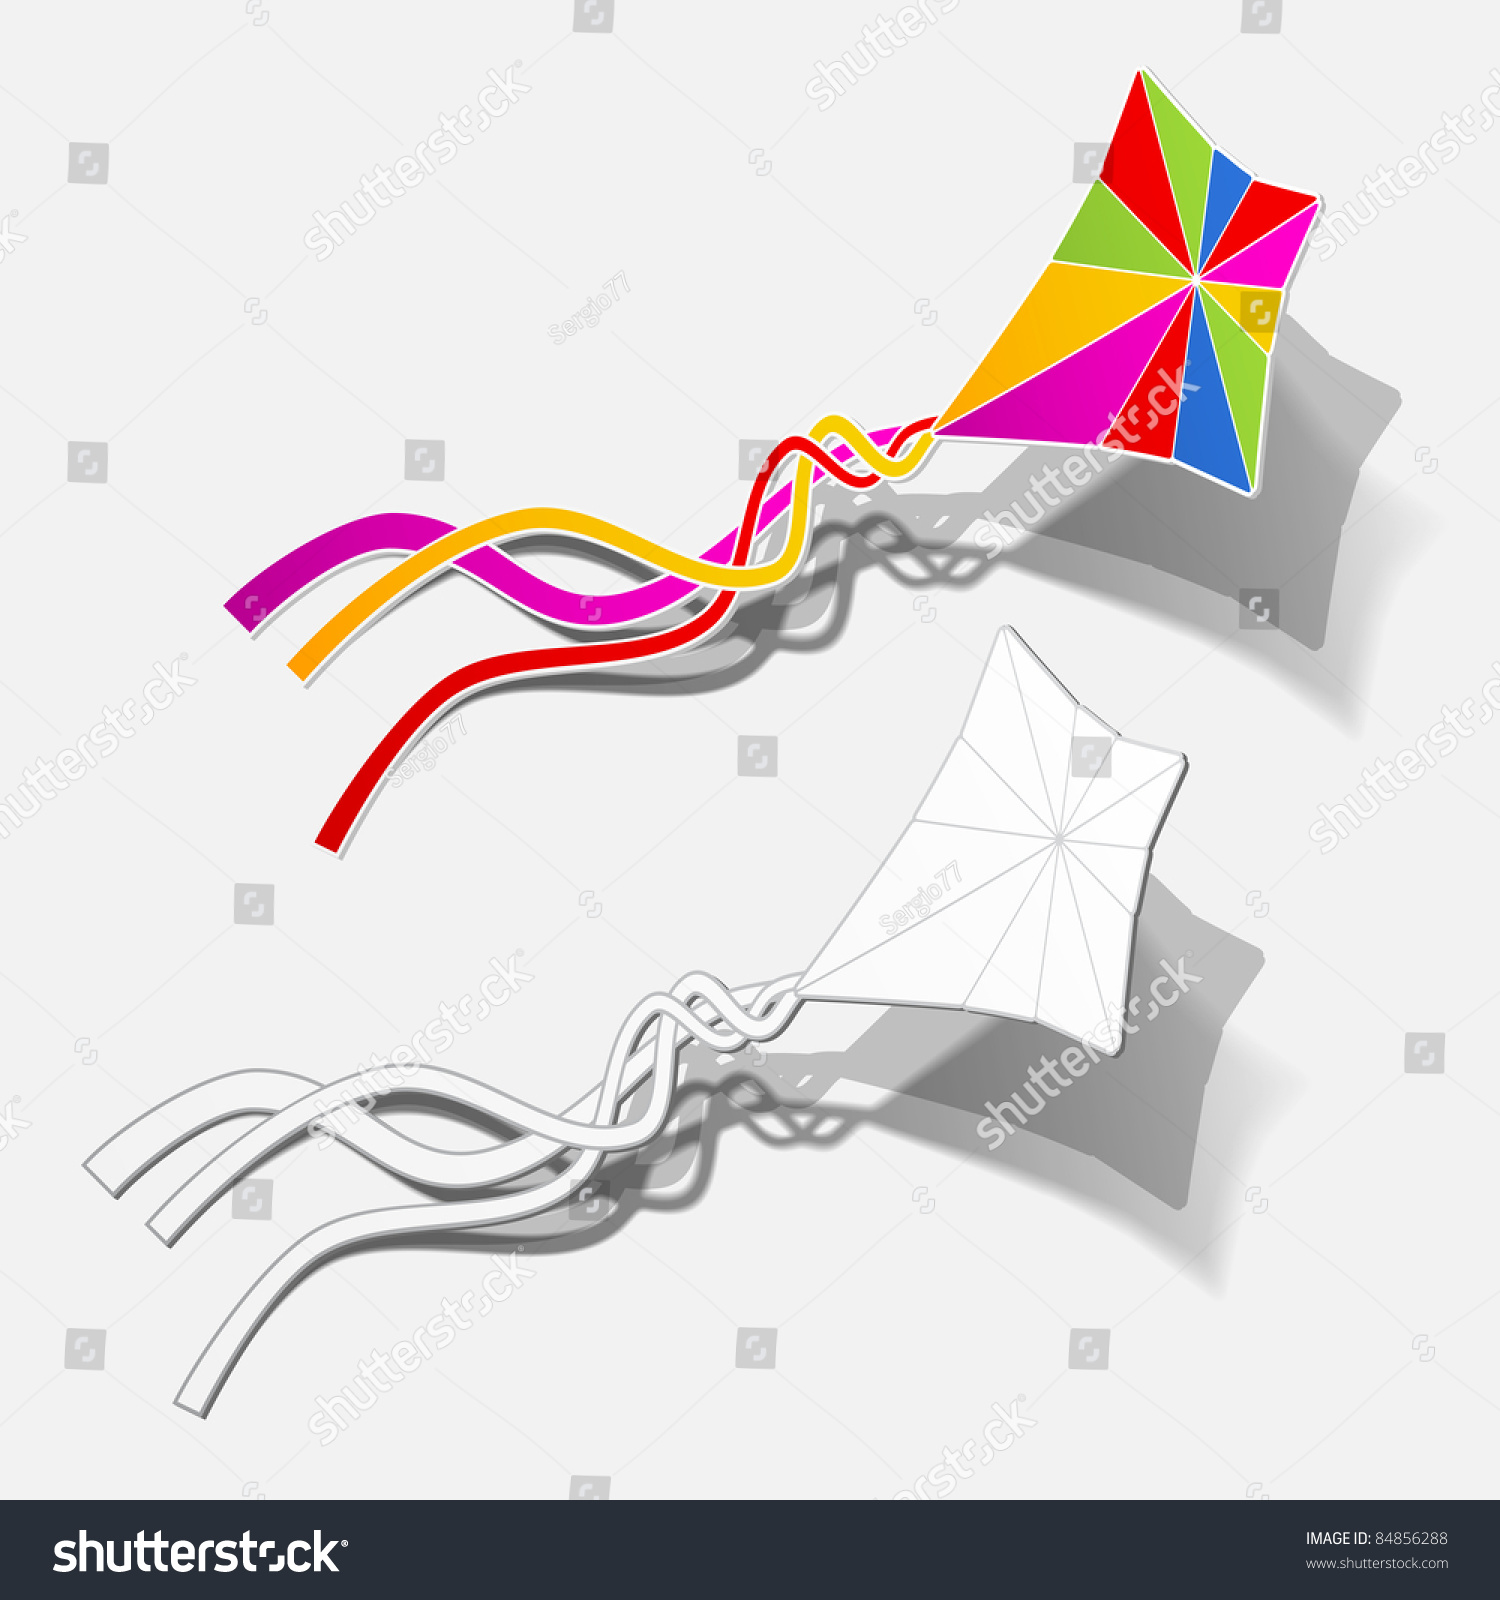 Eps10 kite hobby game fly free stock vector 84856288 shutterstock eps10 kite hobby game fly free outdoor up wind sticker realistic shadow design element biocorpaavc